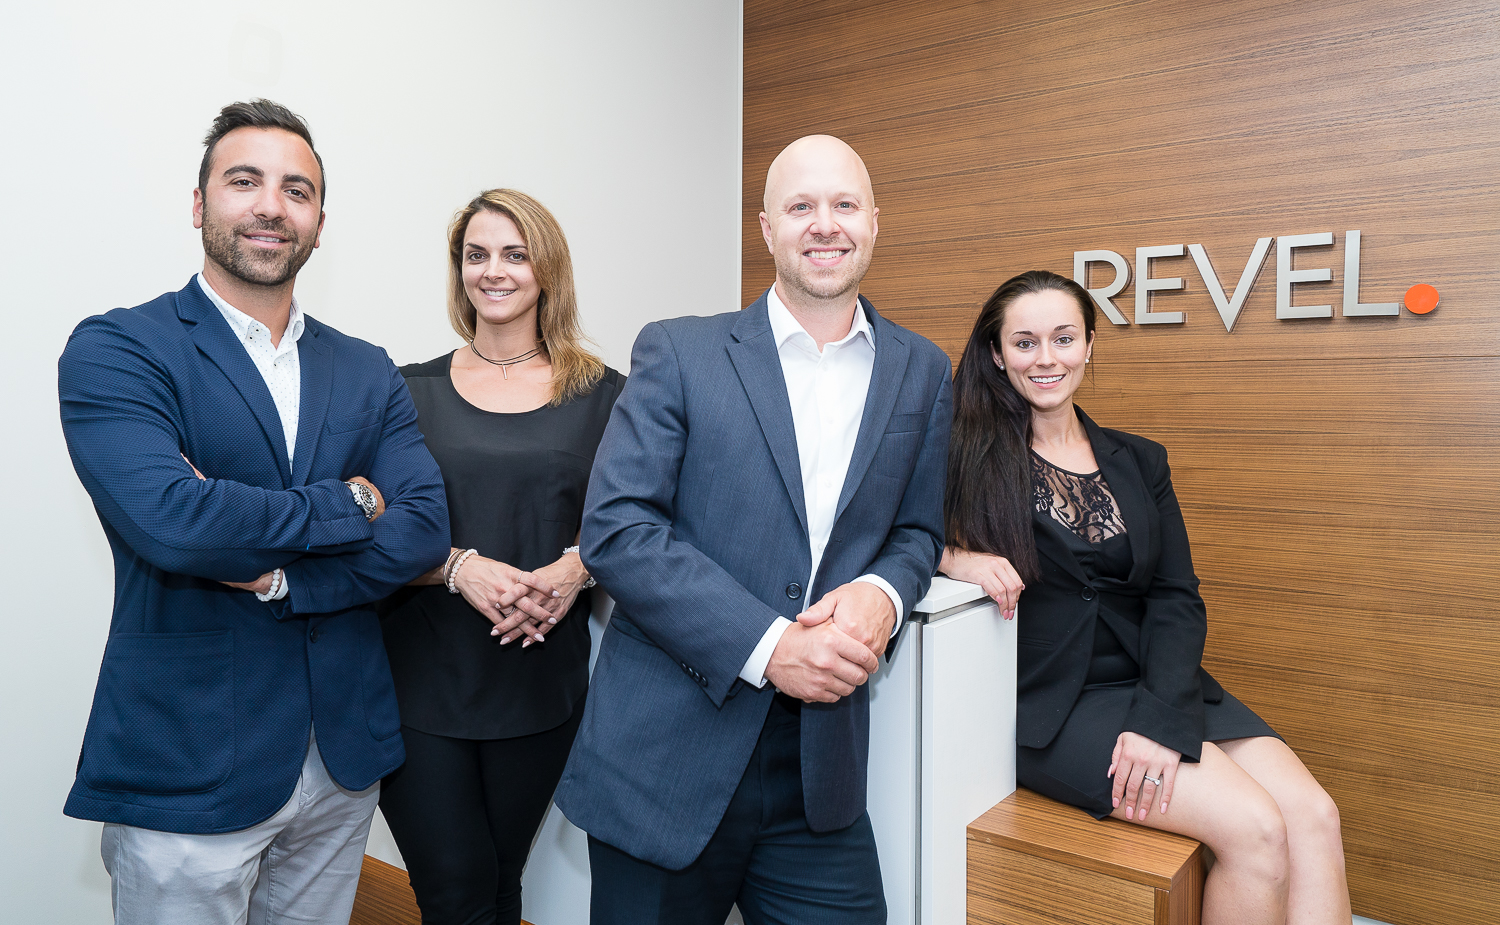 REVEL PROMOTES LEADERS